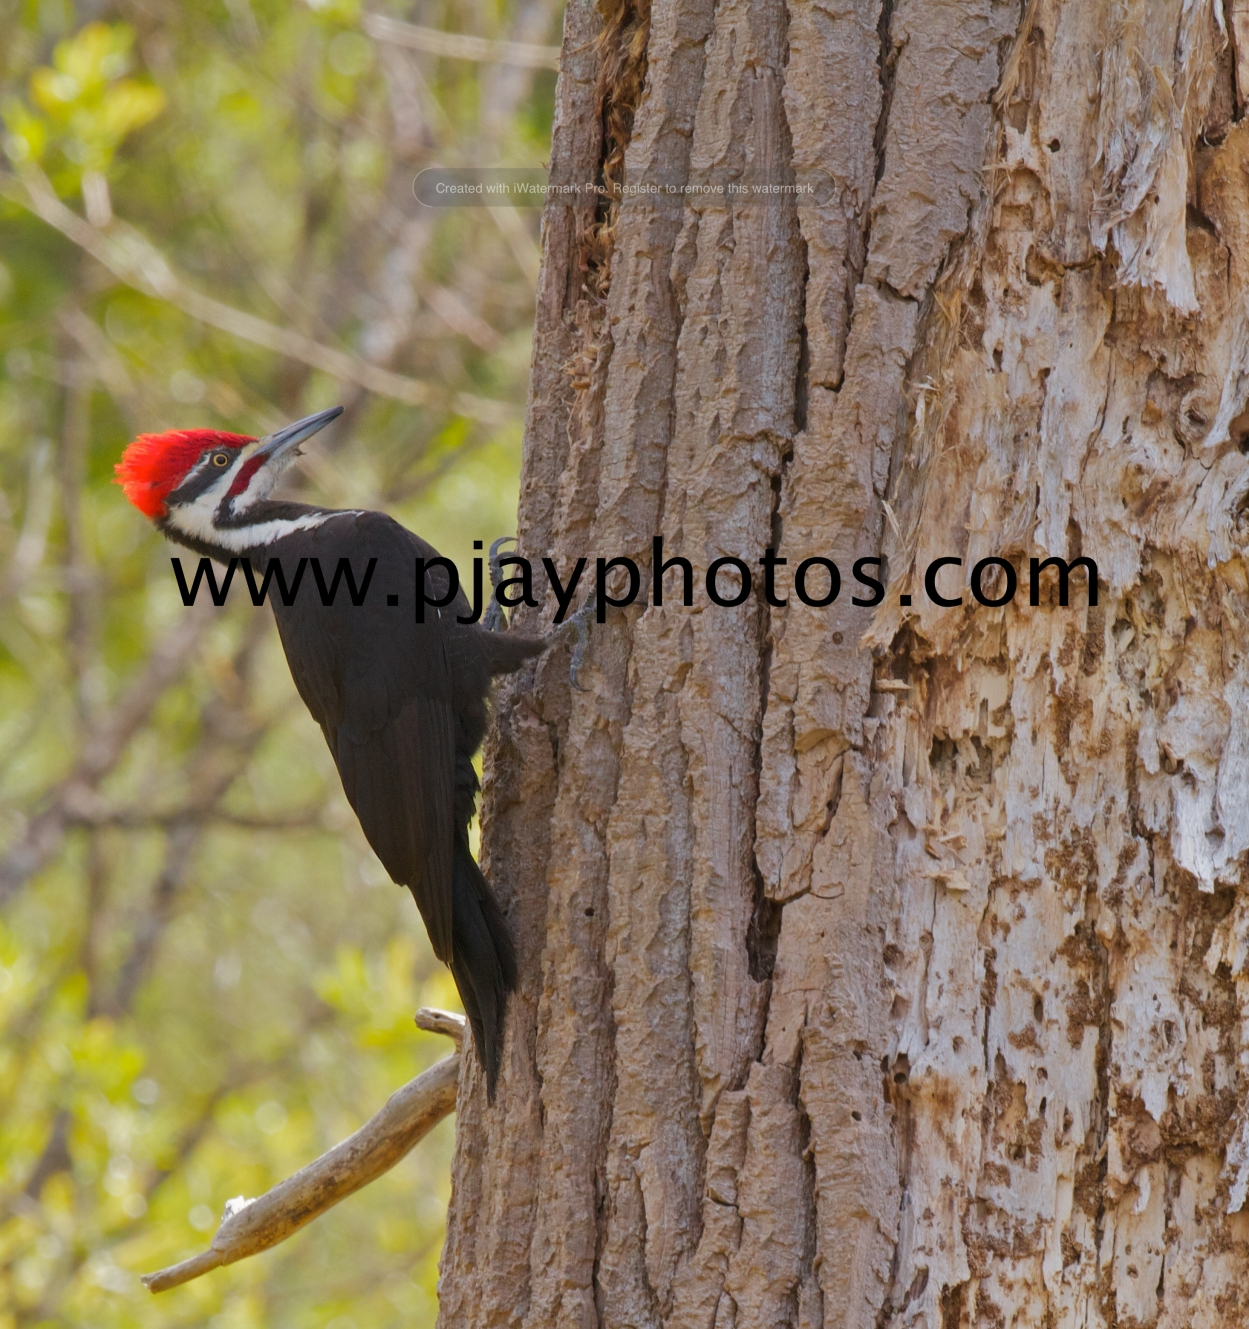 pileated woodpecker, woodpecker, bird, usa, washington, seattle, nature, wildlife, photograph